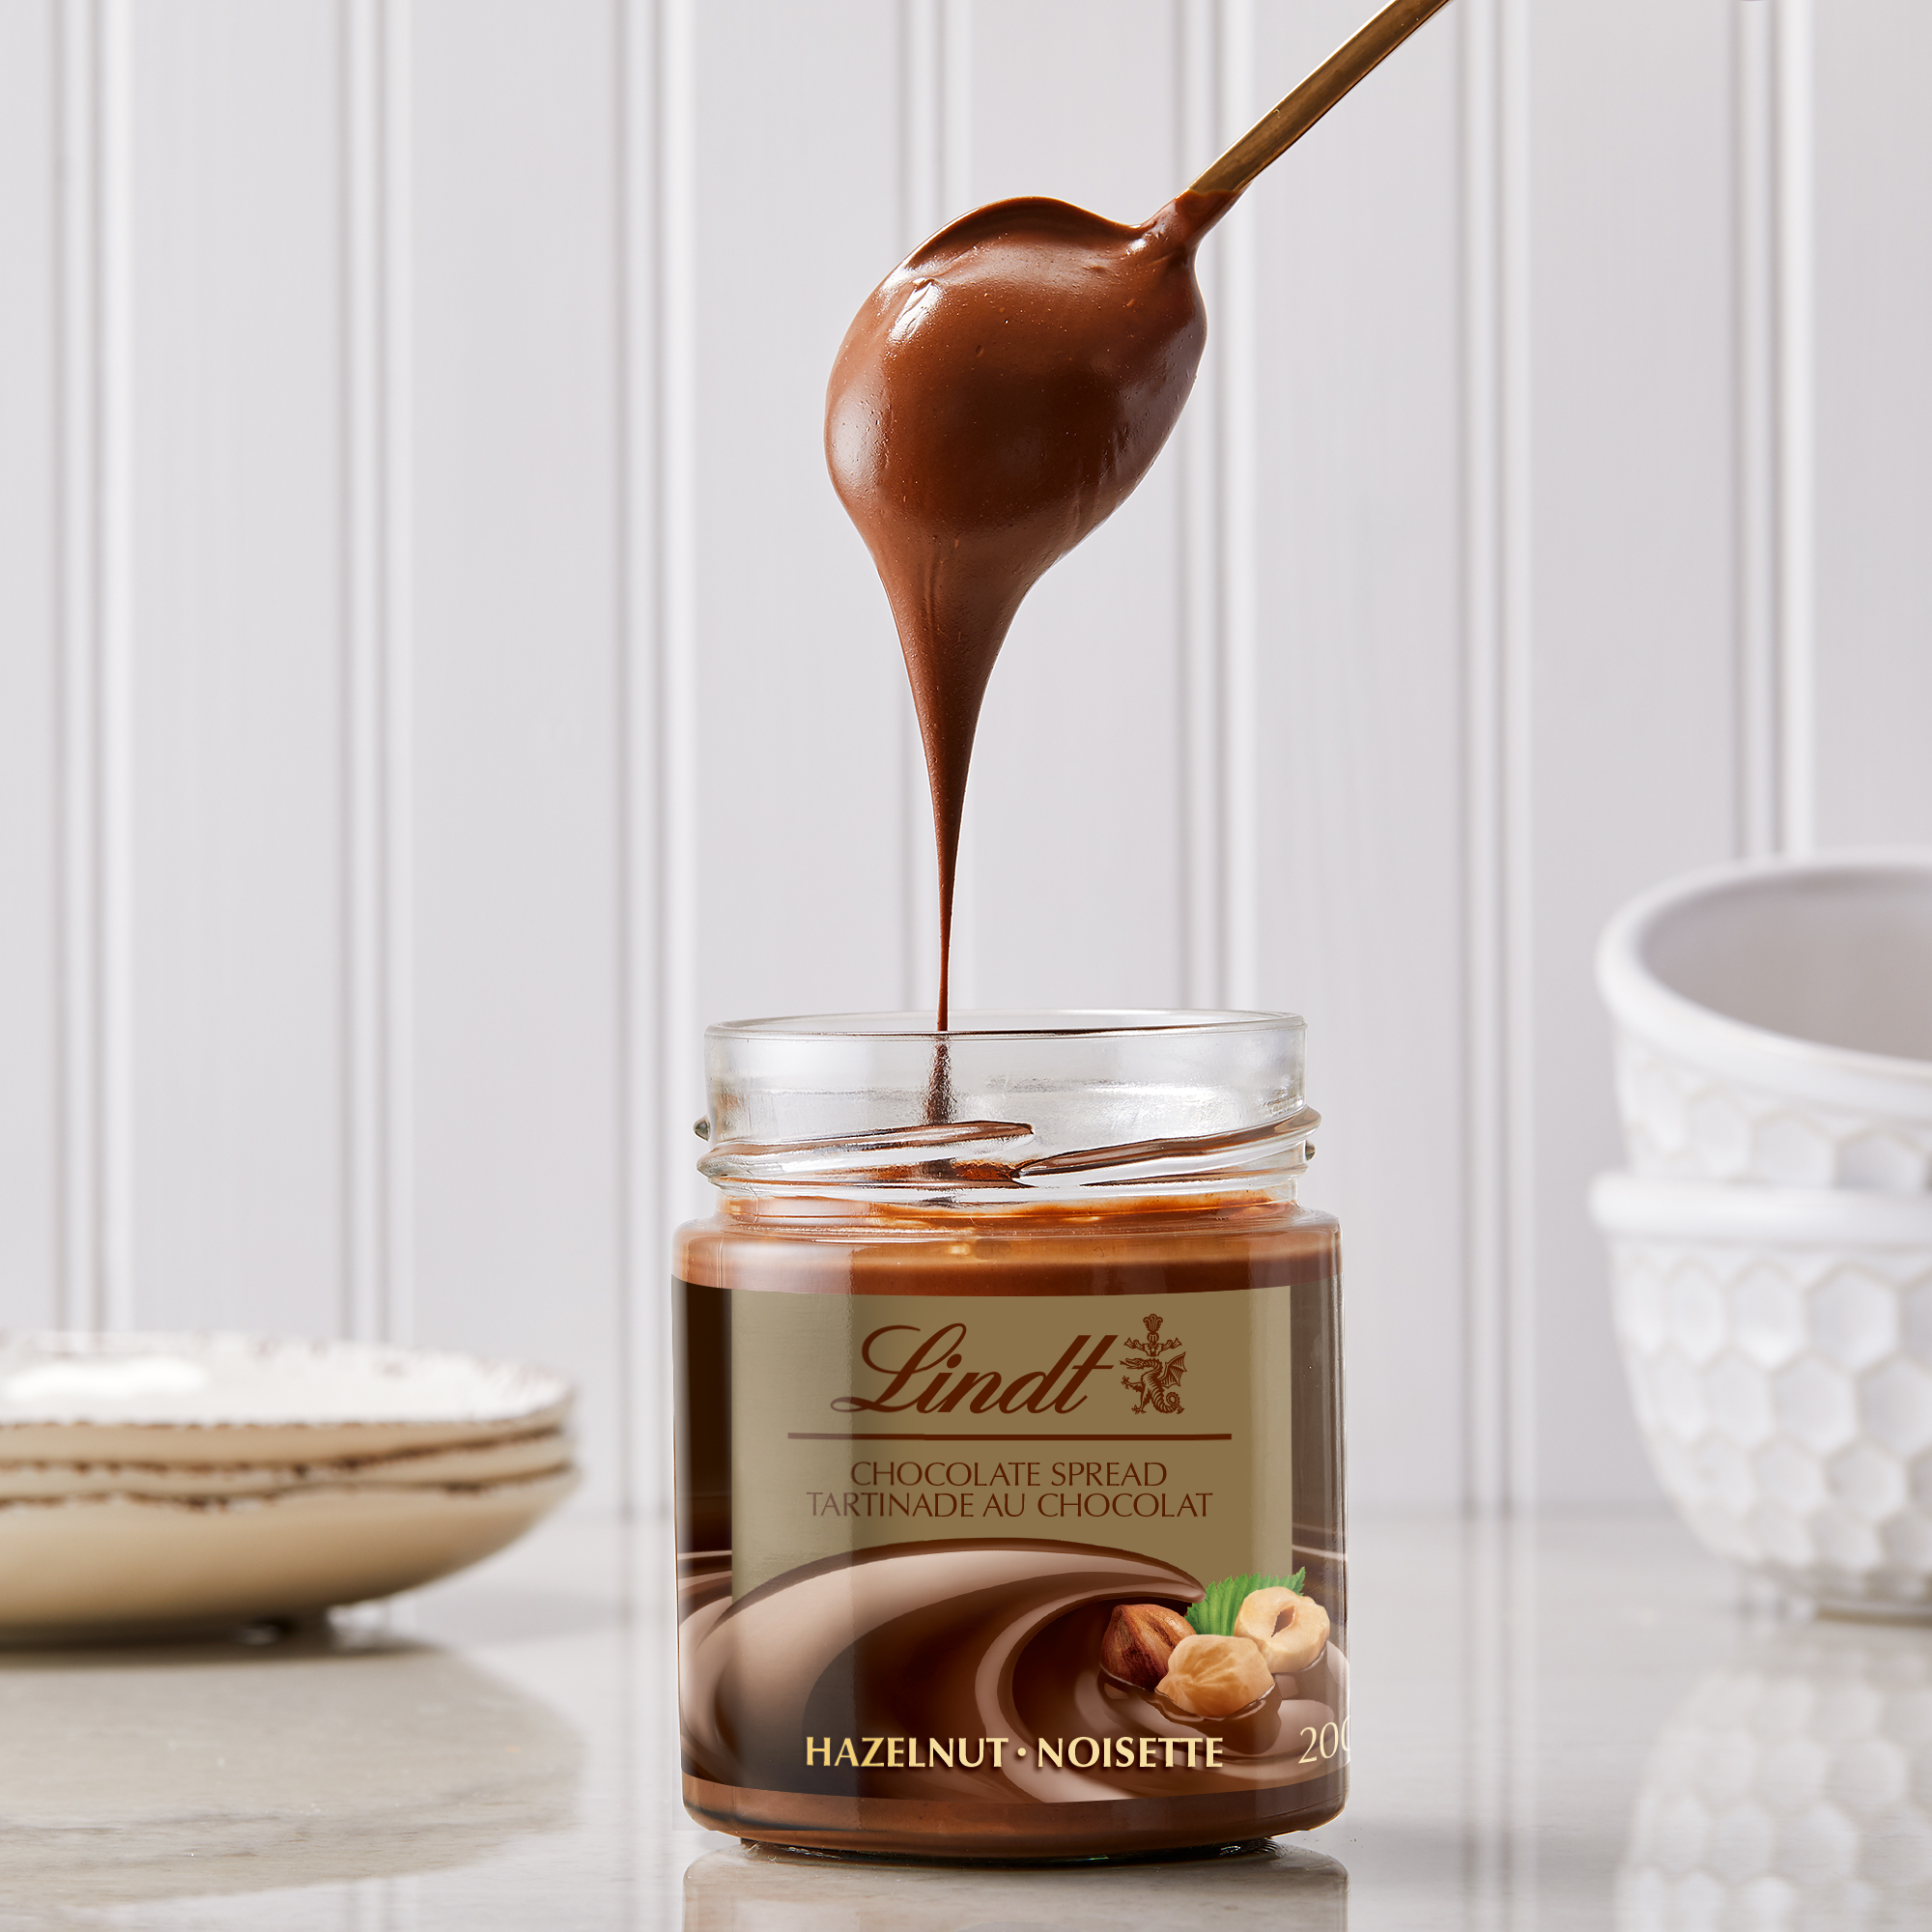 Lindt chocolate as a spread? Yes please